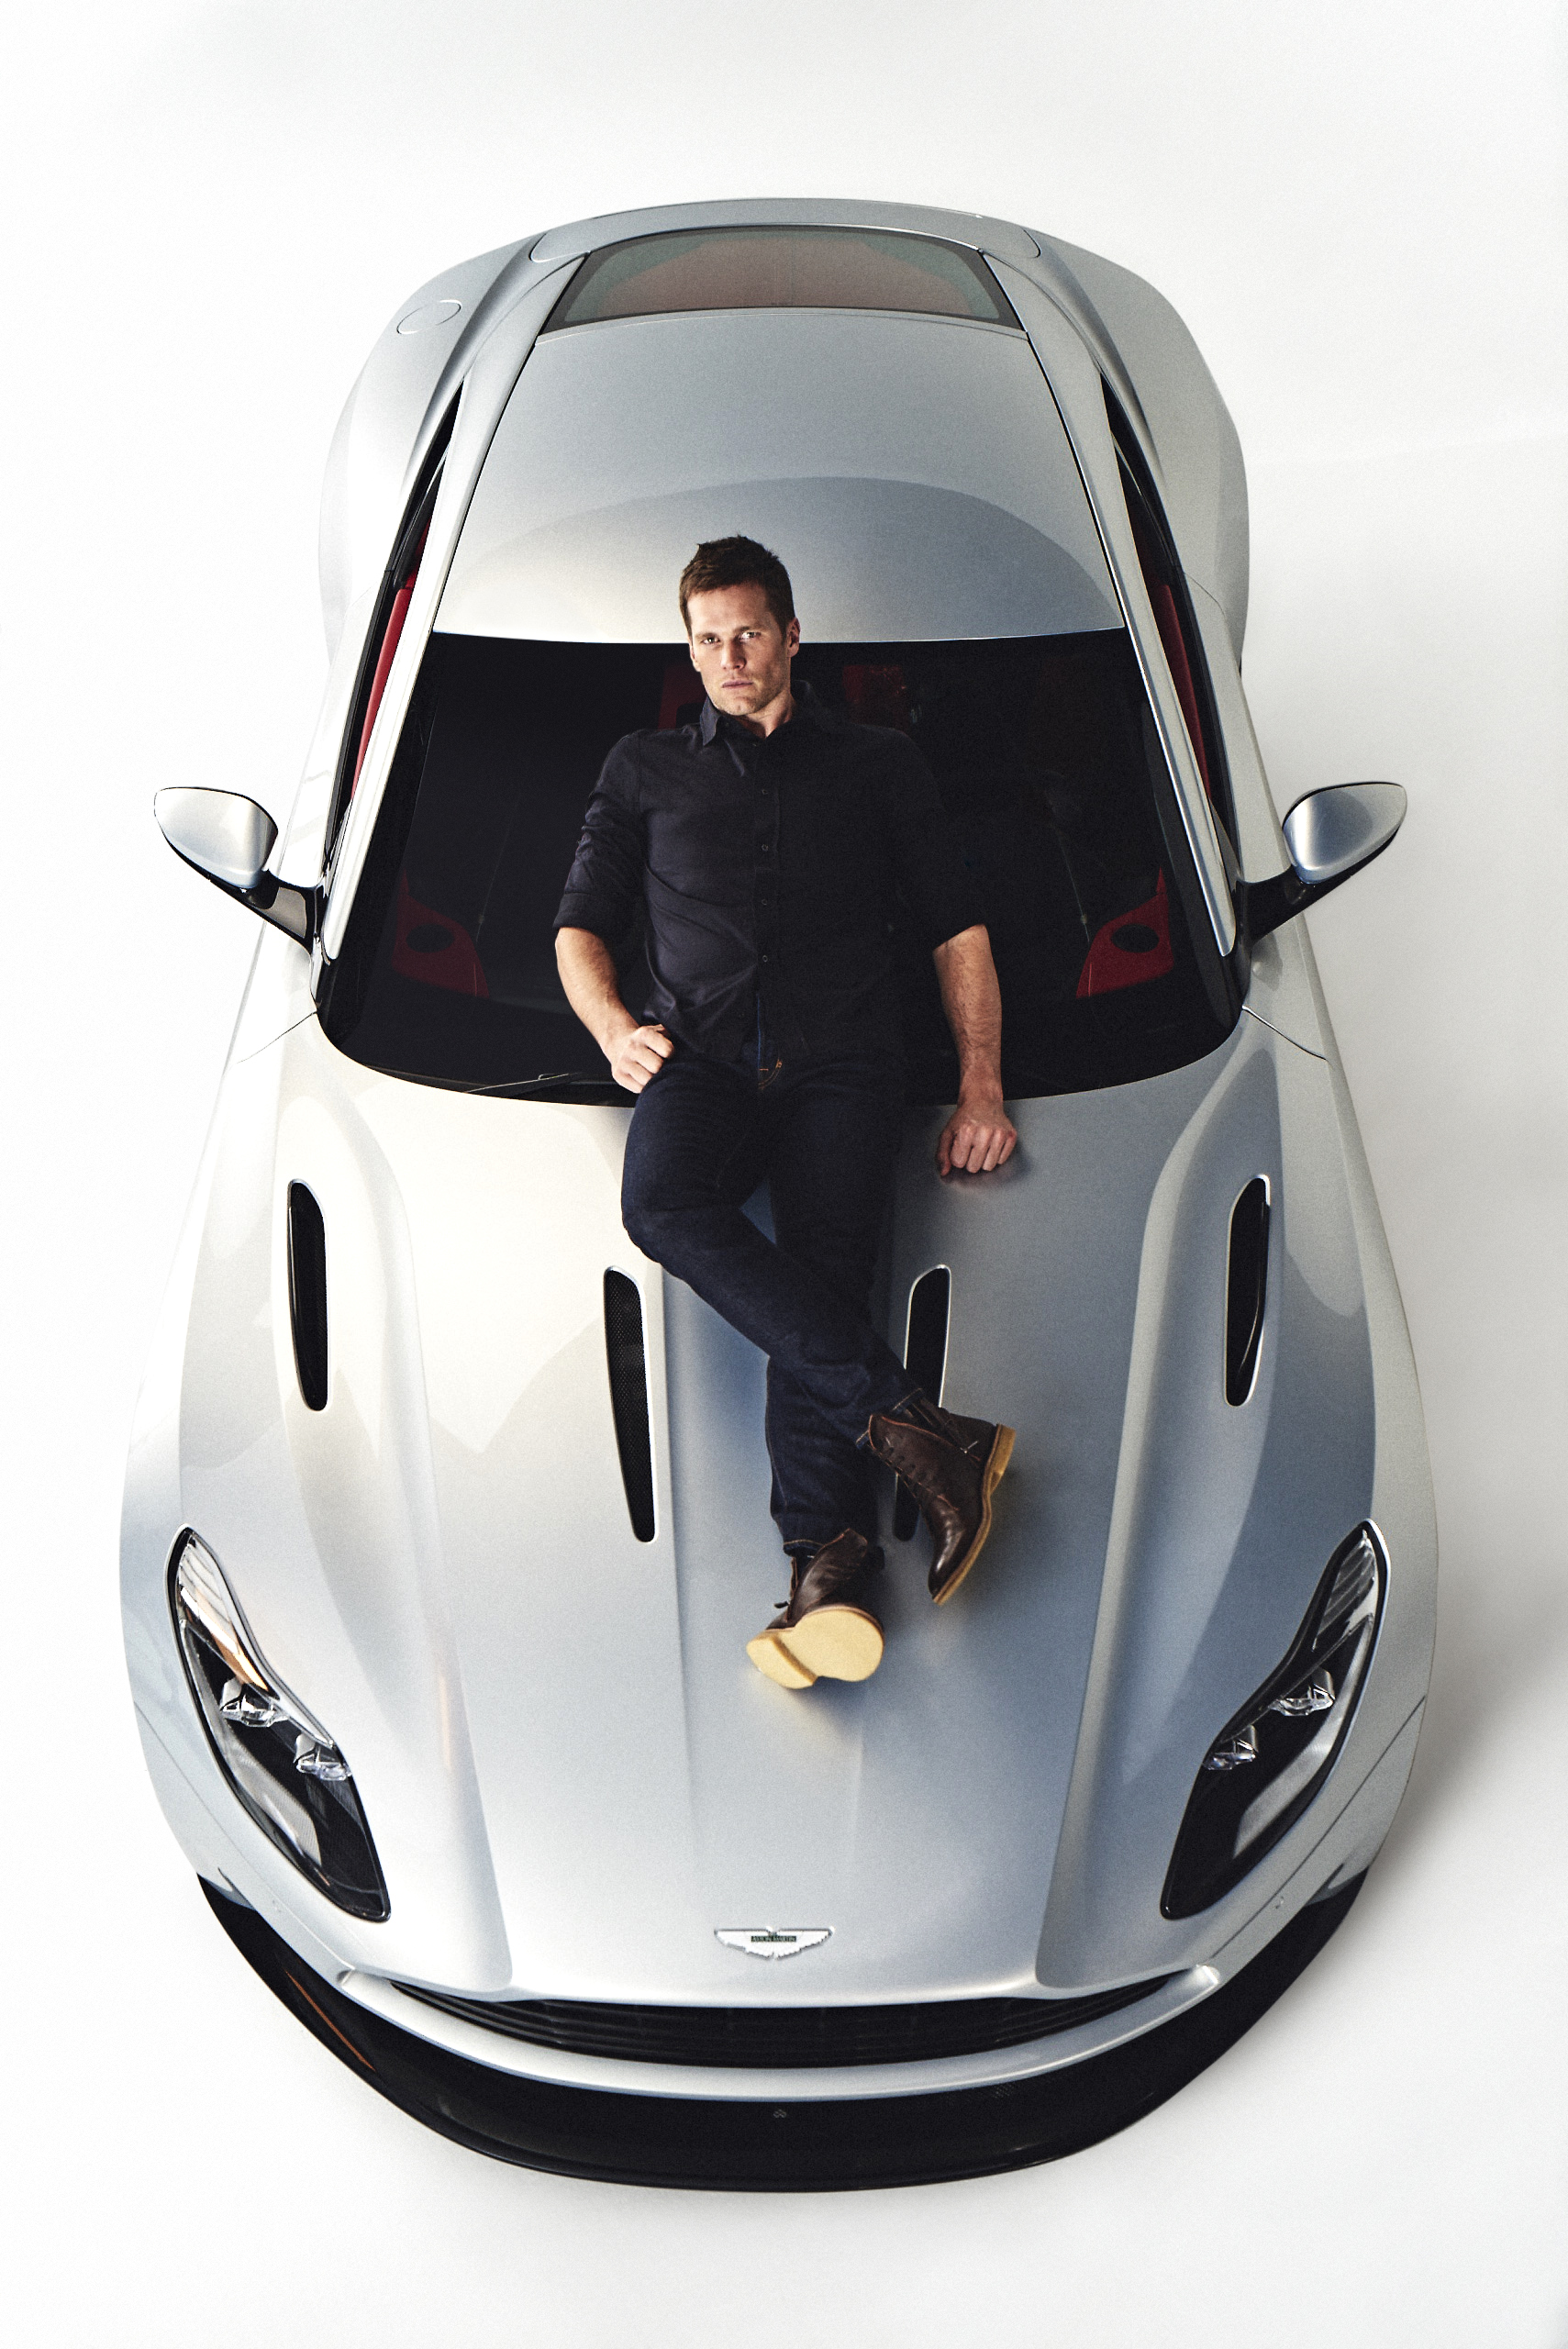 Tom Brady Aston Martin Join Forces For Sponsorship Deal The Drive